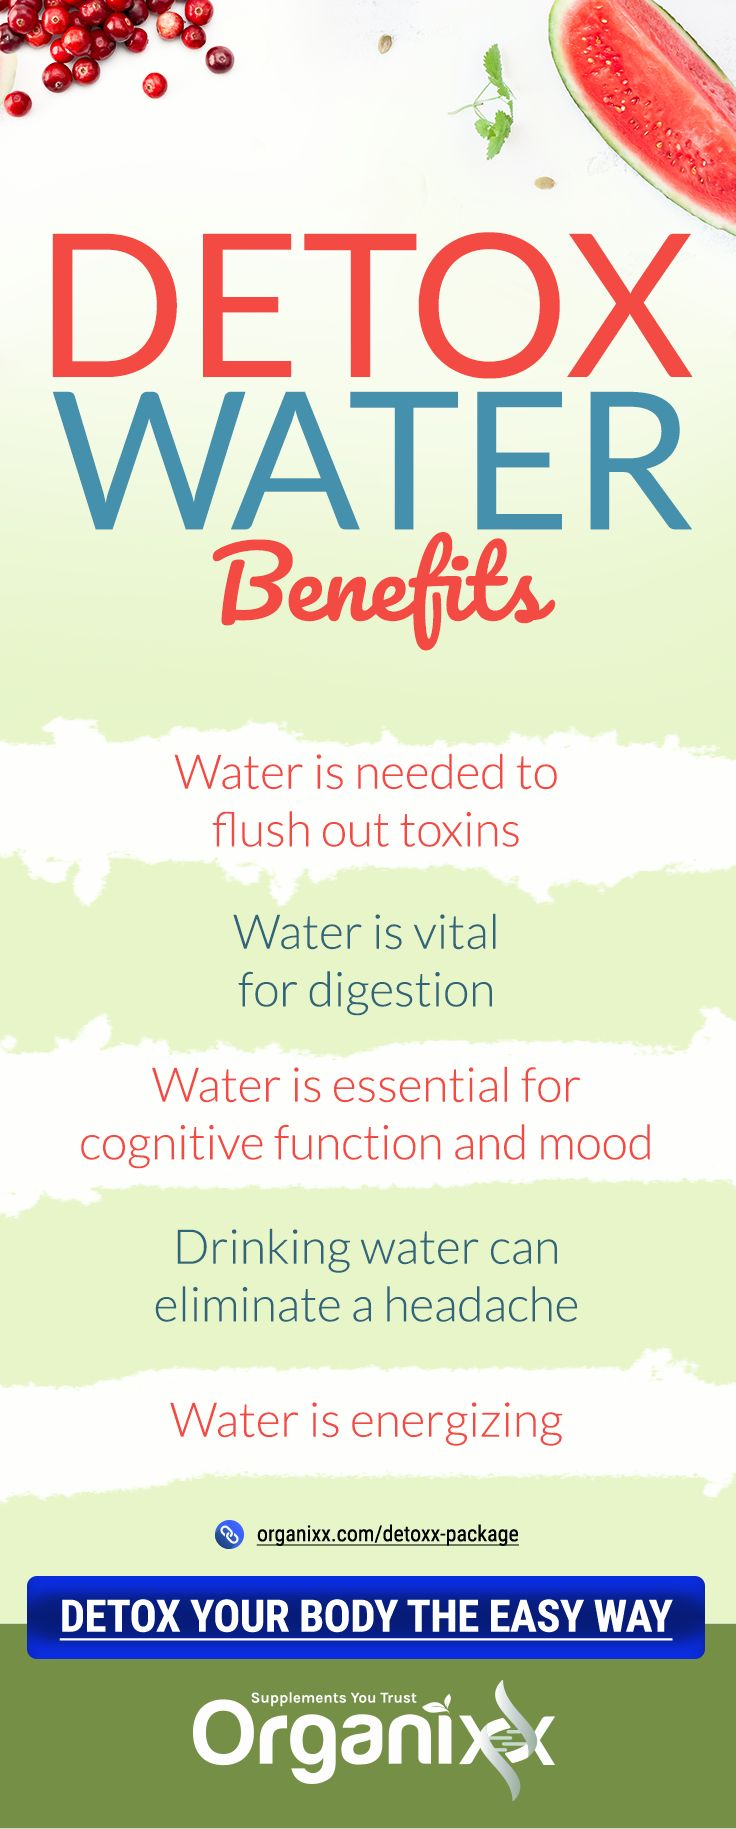 Detox Water Benefits: Watermelon, cucumber, lemon…oh my! We all know how good these wonderful, refreshing fruits and vegetables are for our health. But did you know that you can also put them in plain, filtered water to not only get some nutrients, but also stay well hydrated? Click on the image above to read on for 5 new easy-to-make detoxx water recipes that you won't want to go without in the new year. #DetoxRecipe #HealthyDetox #EasyDetox #DetoxMadeEasy